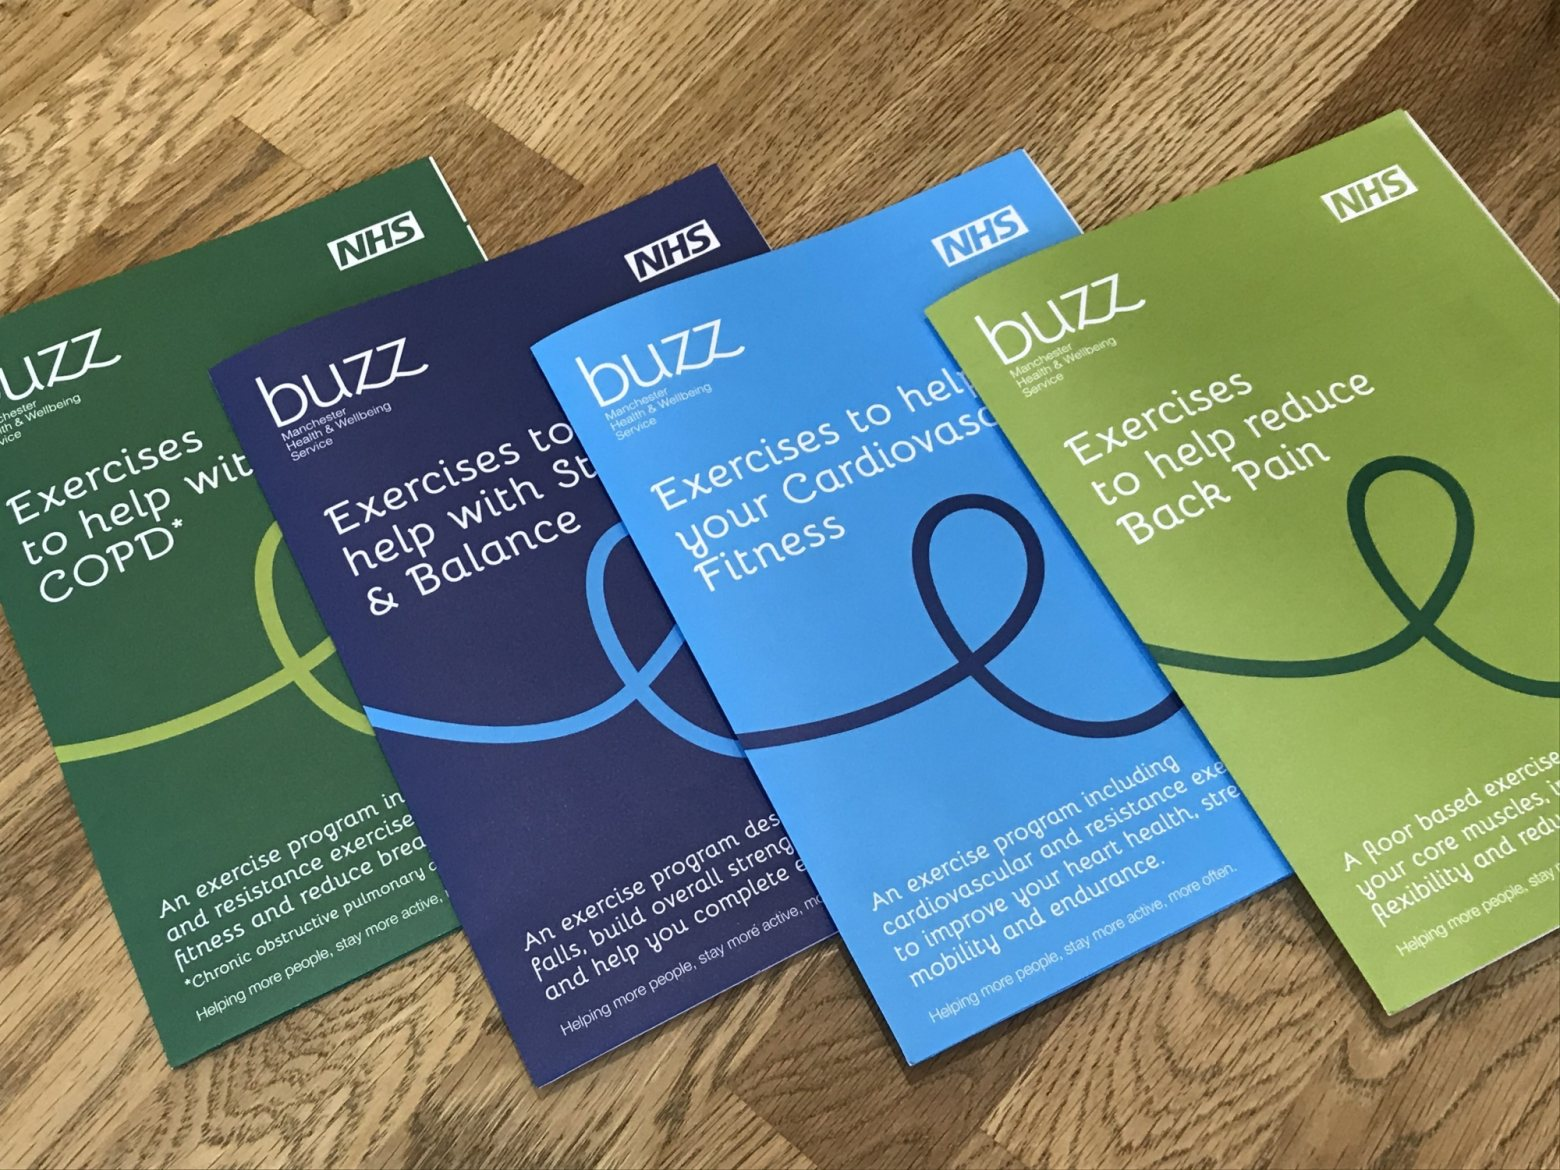 Exercise leaflet design for the NHS